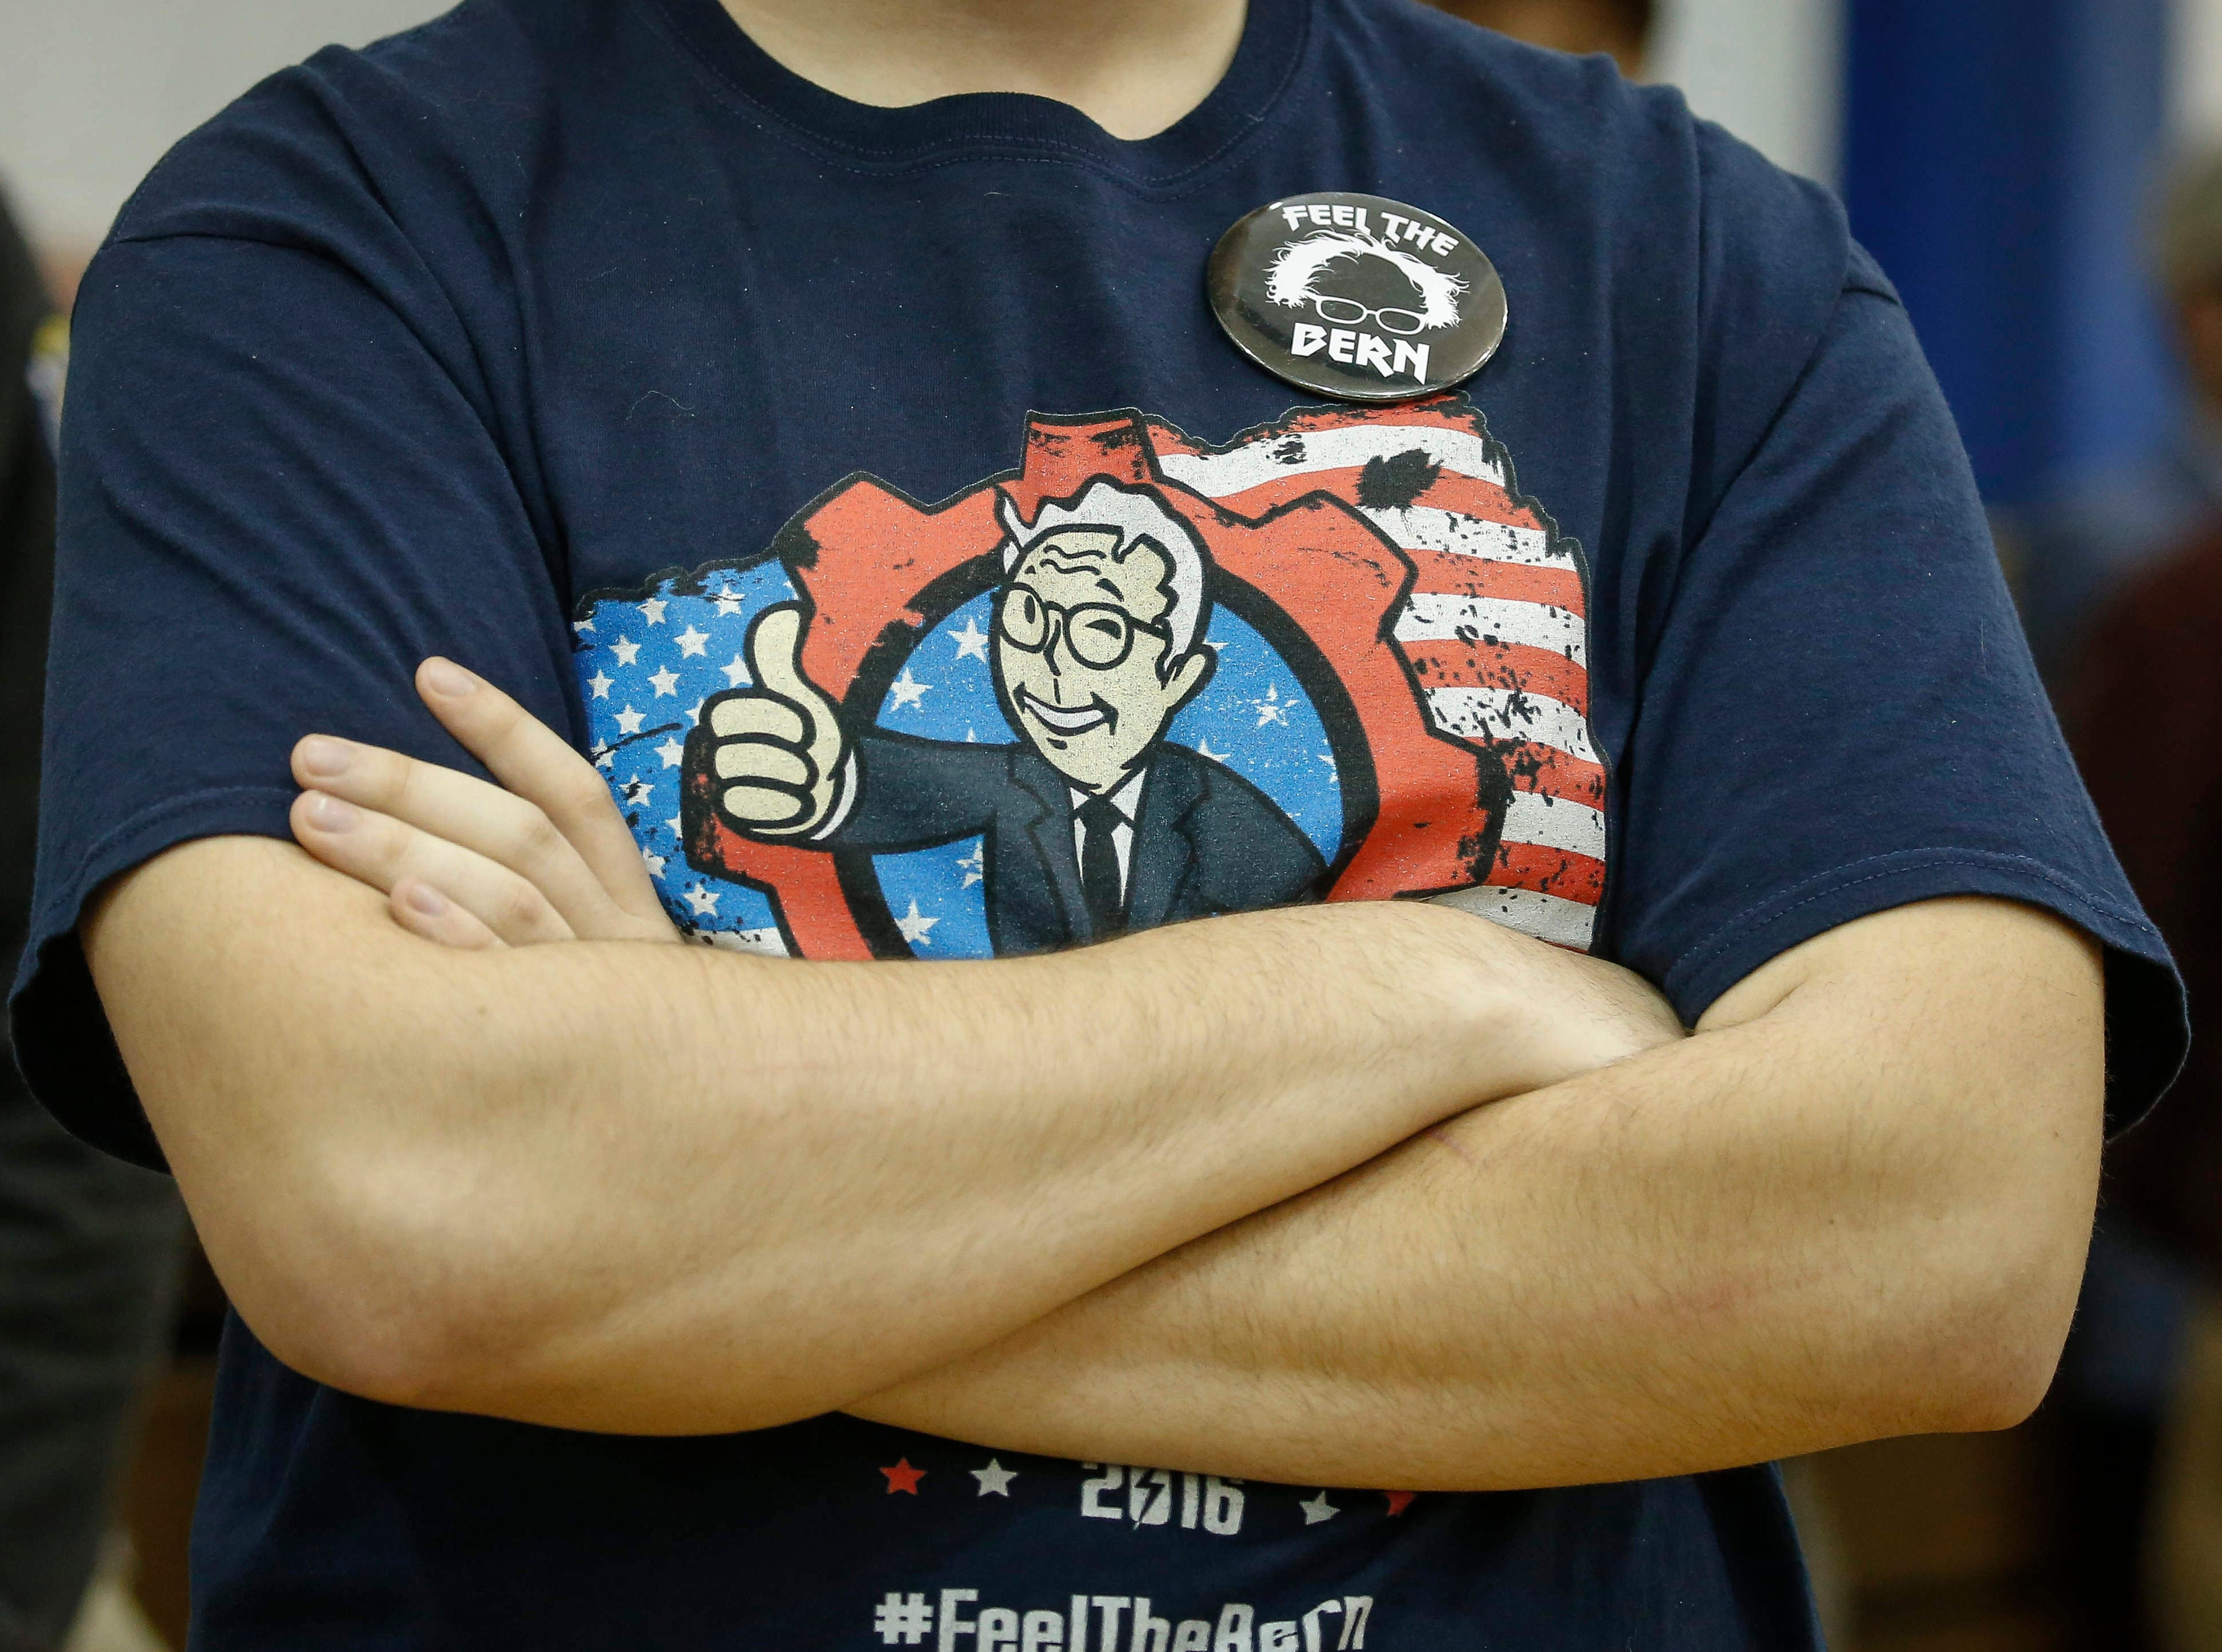 A fan of Democratic presidential candidate hopeful Bernie Sanders dons a Feel the Bern t-shirt as Sen. Sanders speaks to eastern Iowans during a town hall style meeting at West Middle School in Muscatine on Saturday, April 6, 2019.